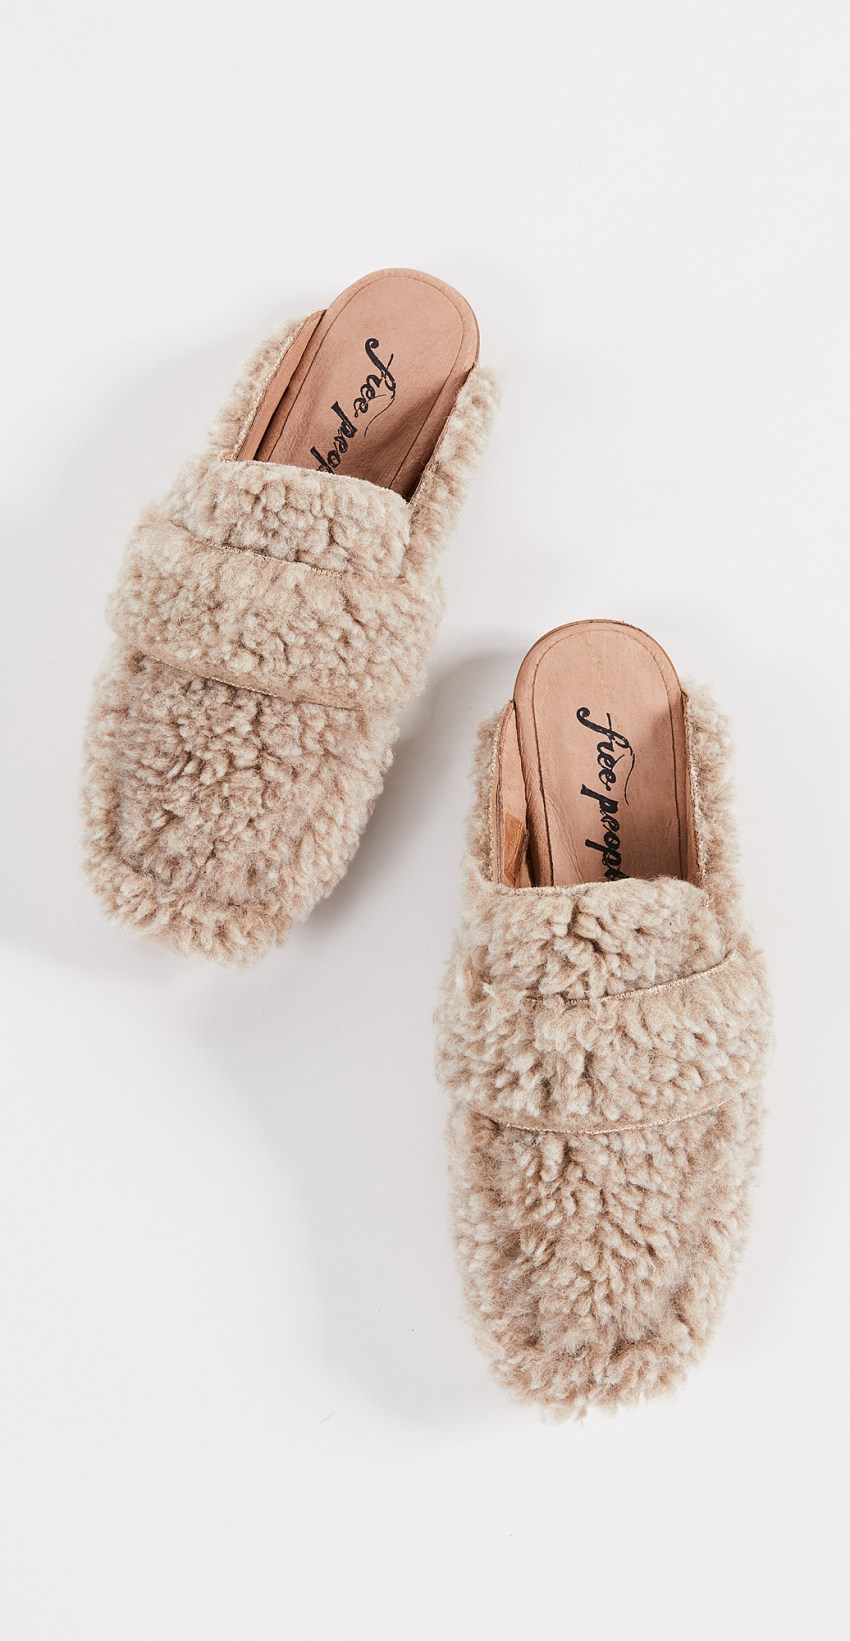 Free People Faux Shearling Mules | ACCESSORIZING FALL 2018